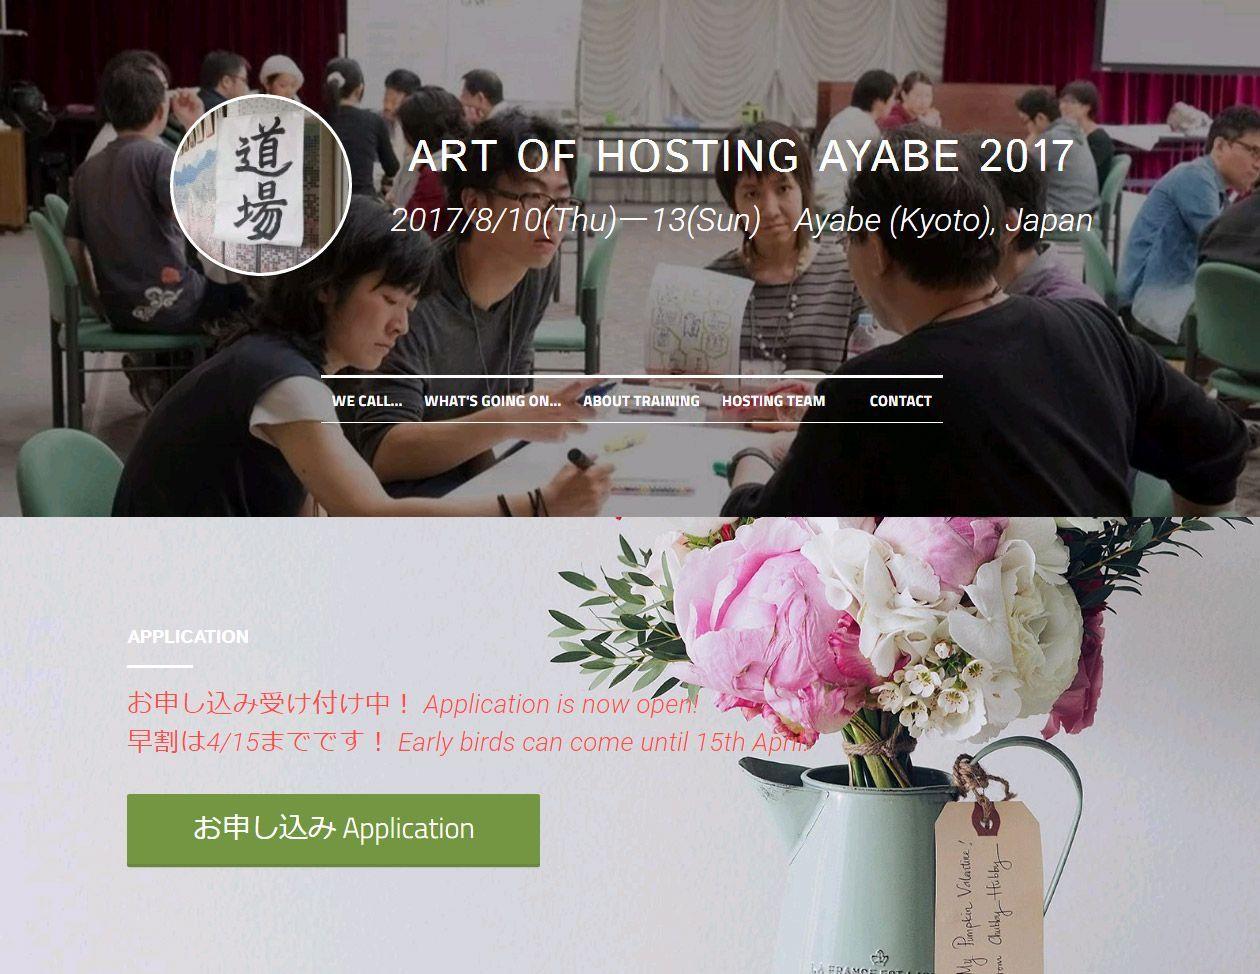 ART OF HOSTING AYABE 2017